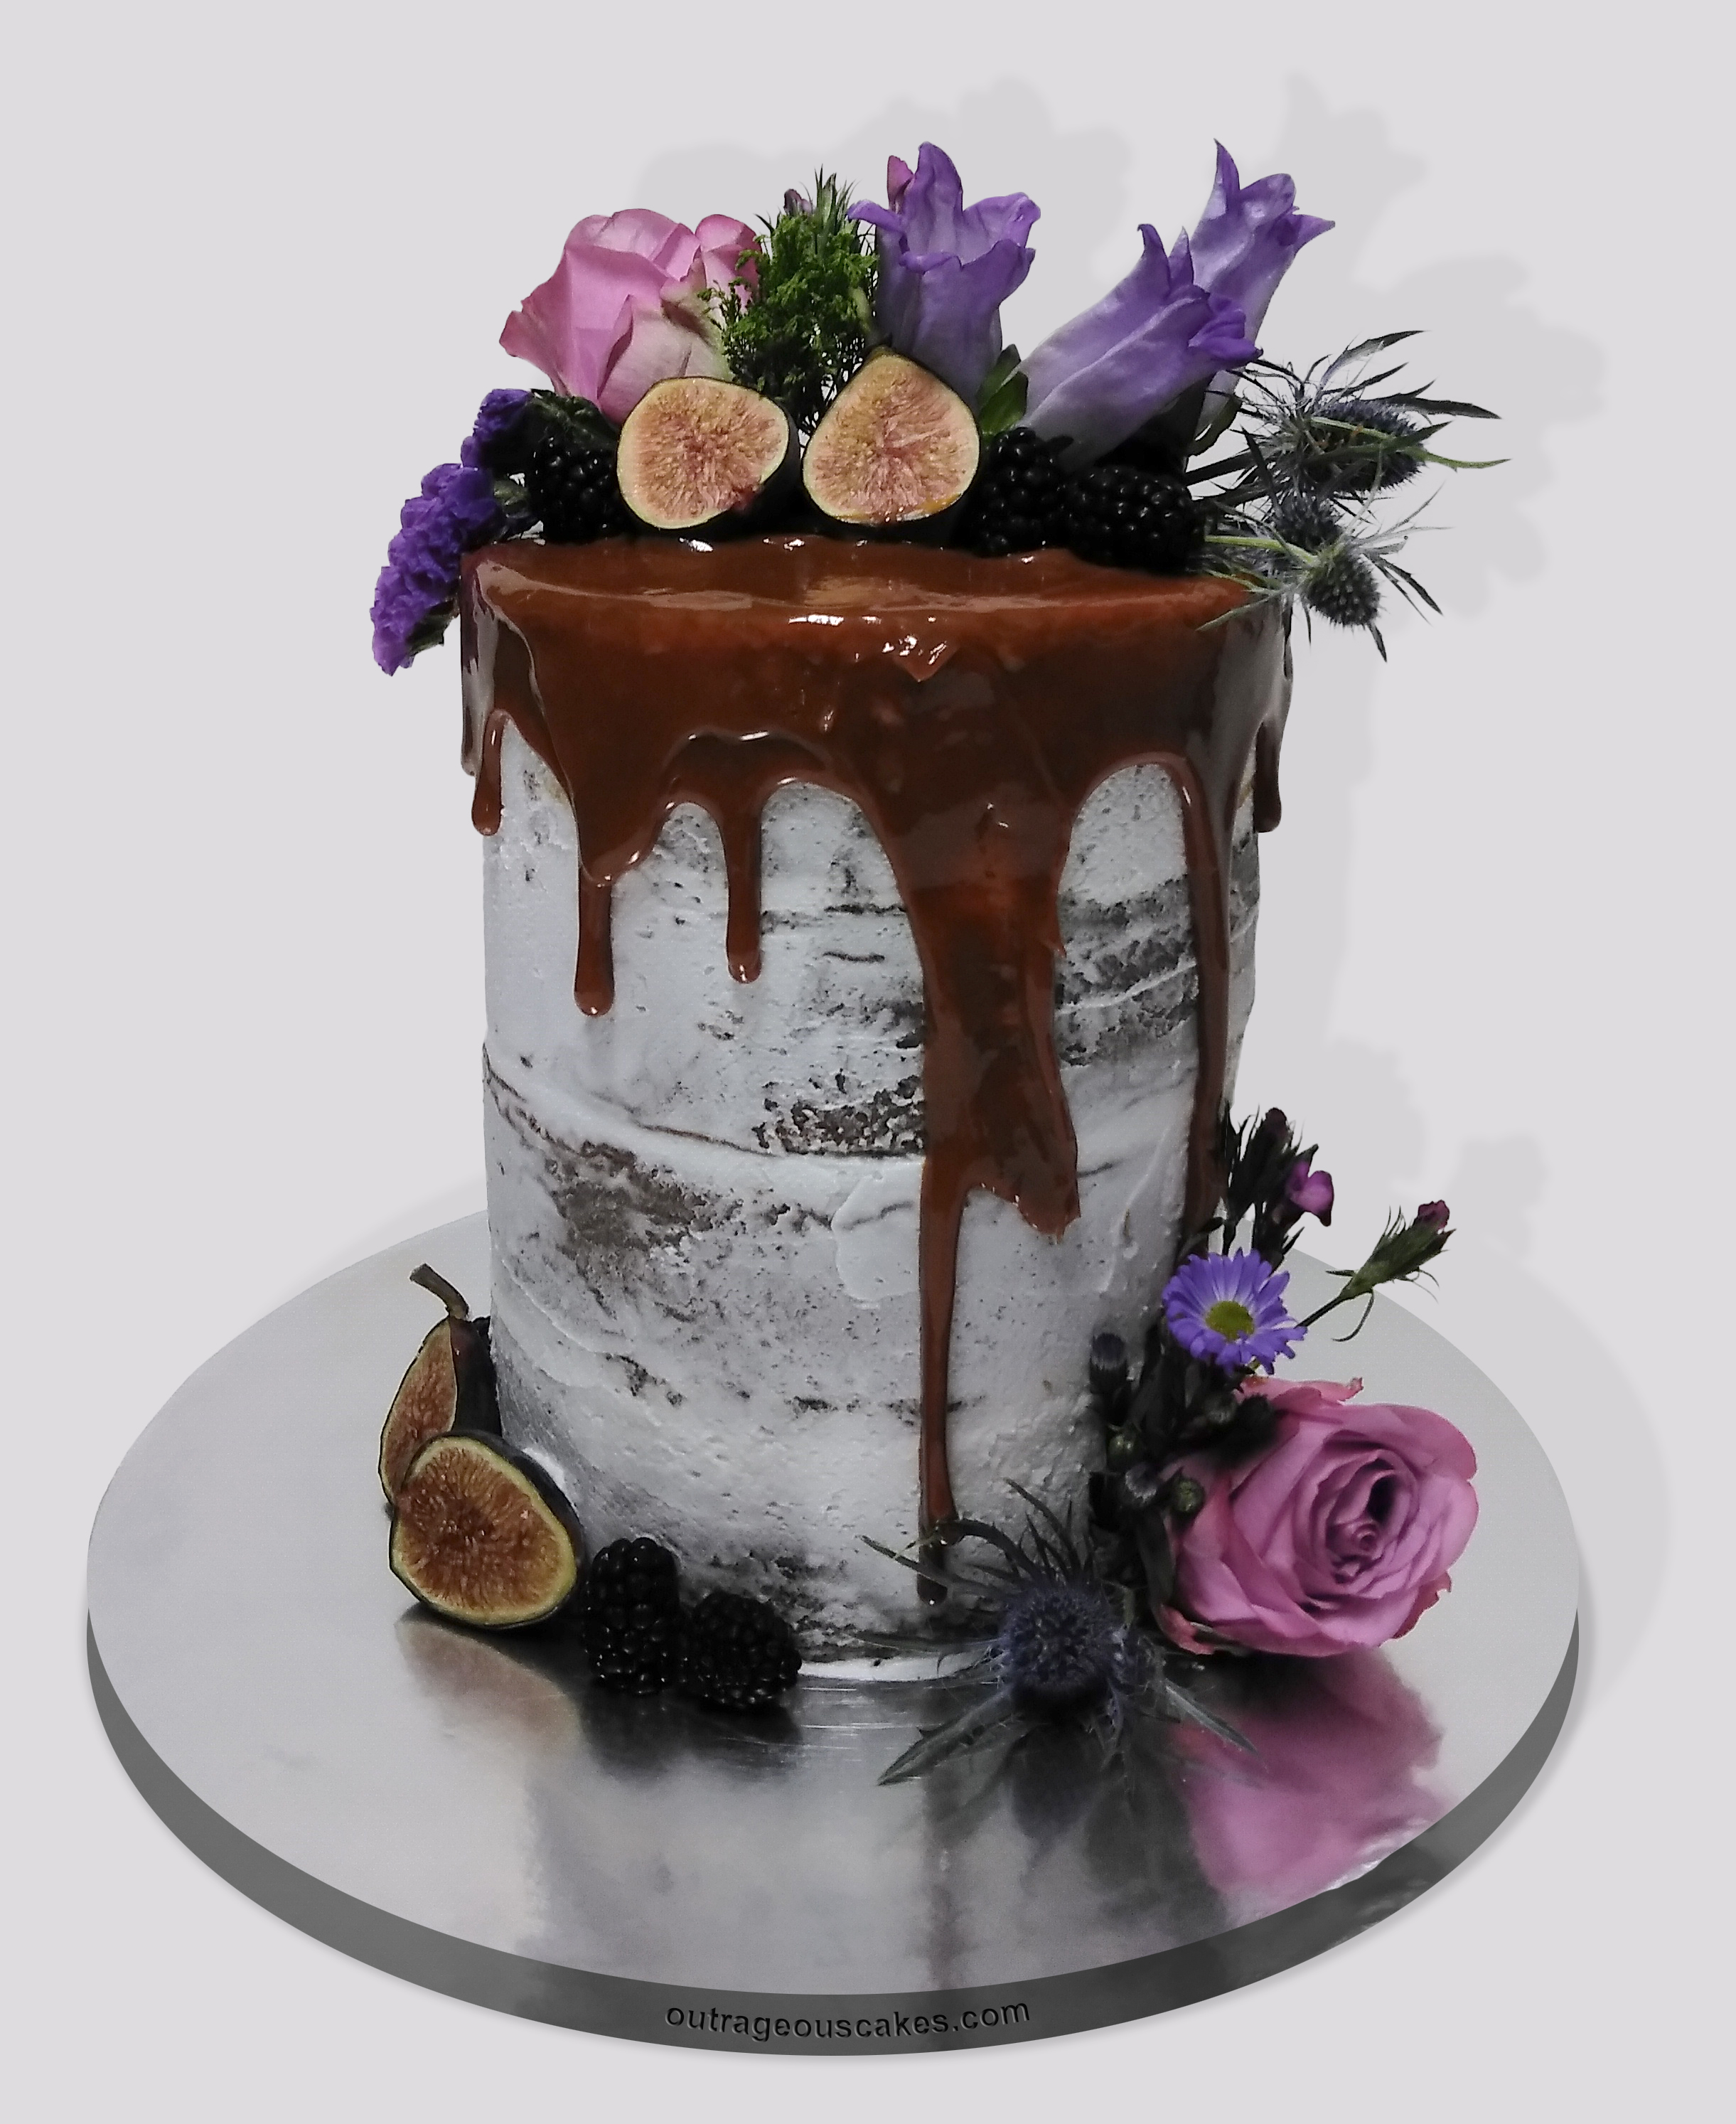 Two Tiered Semi-naked Drip Cake